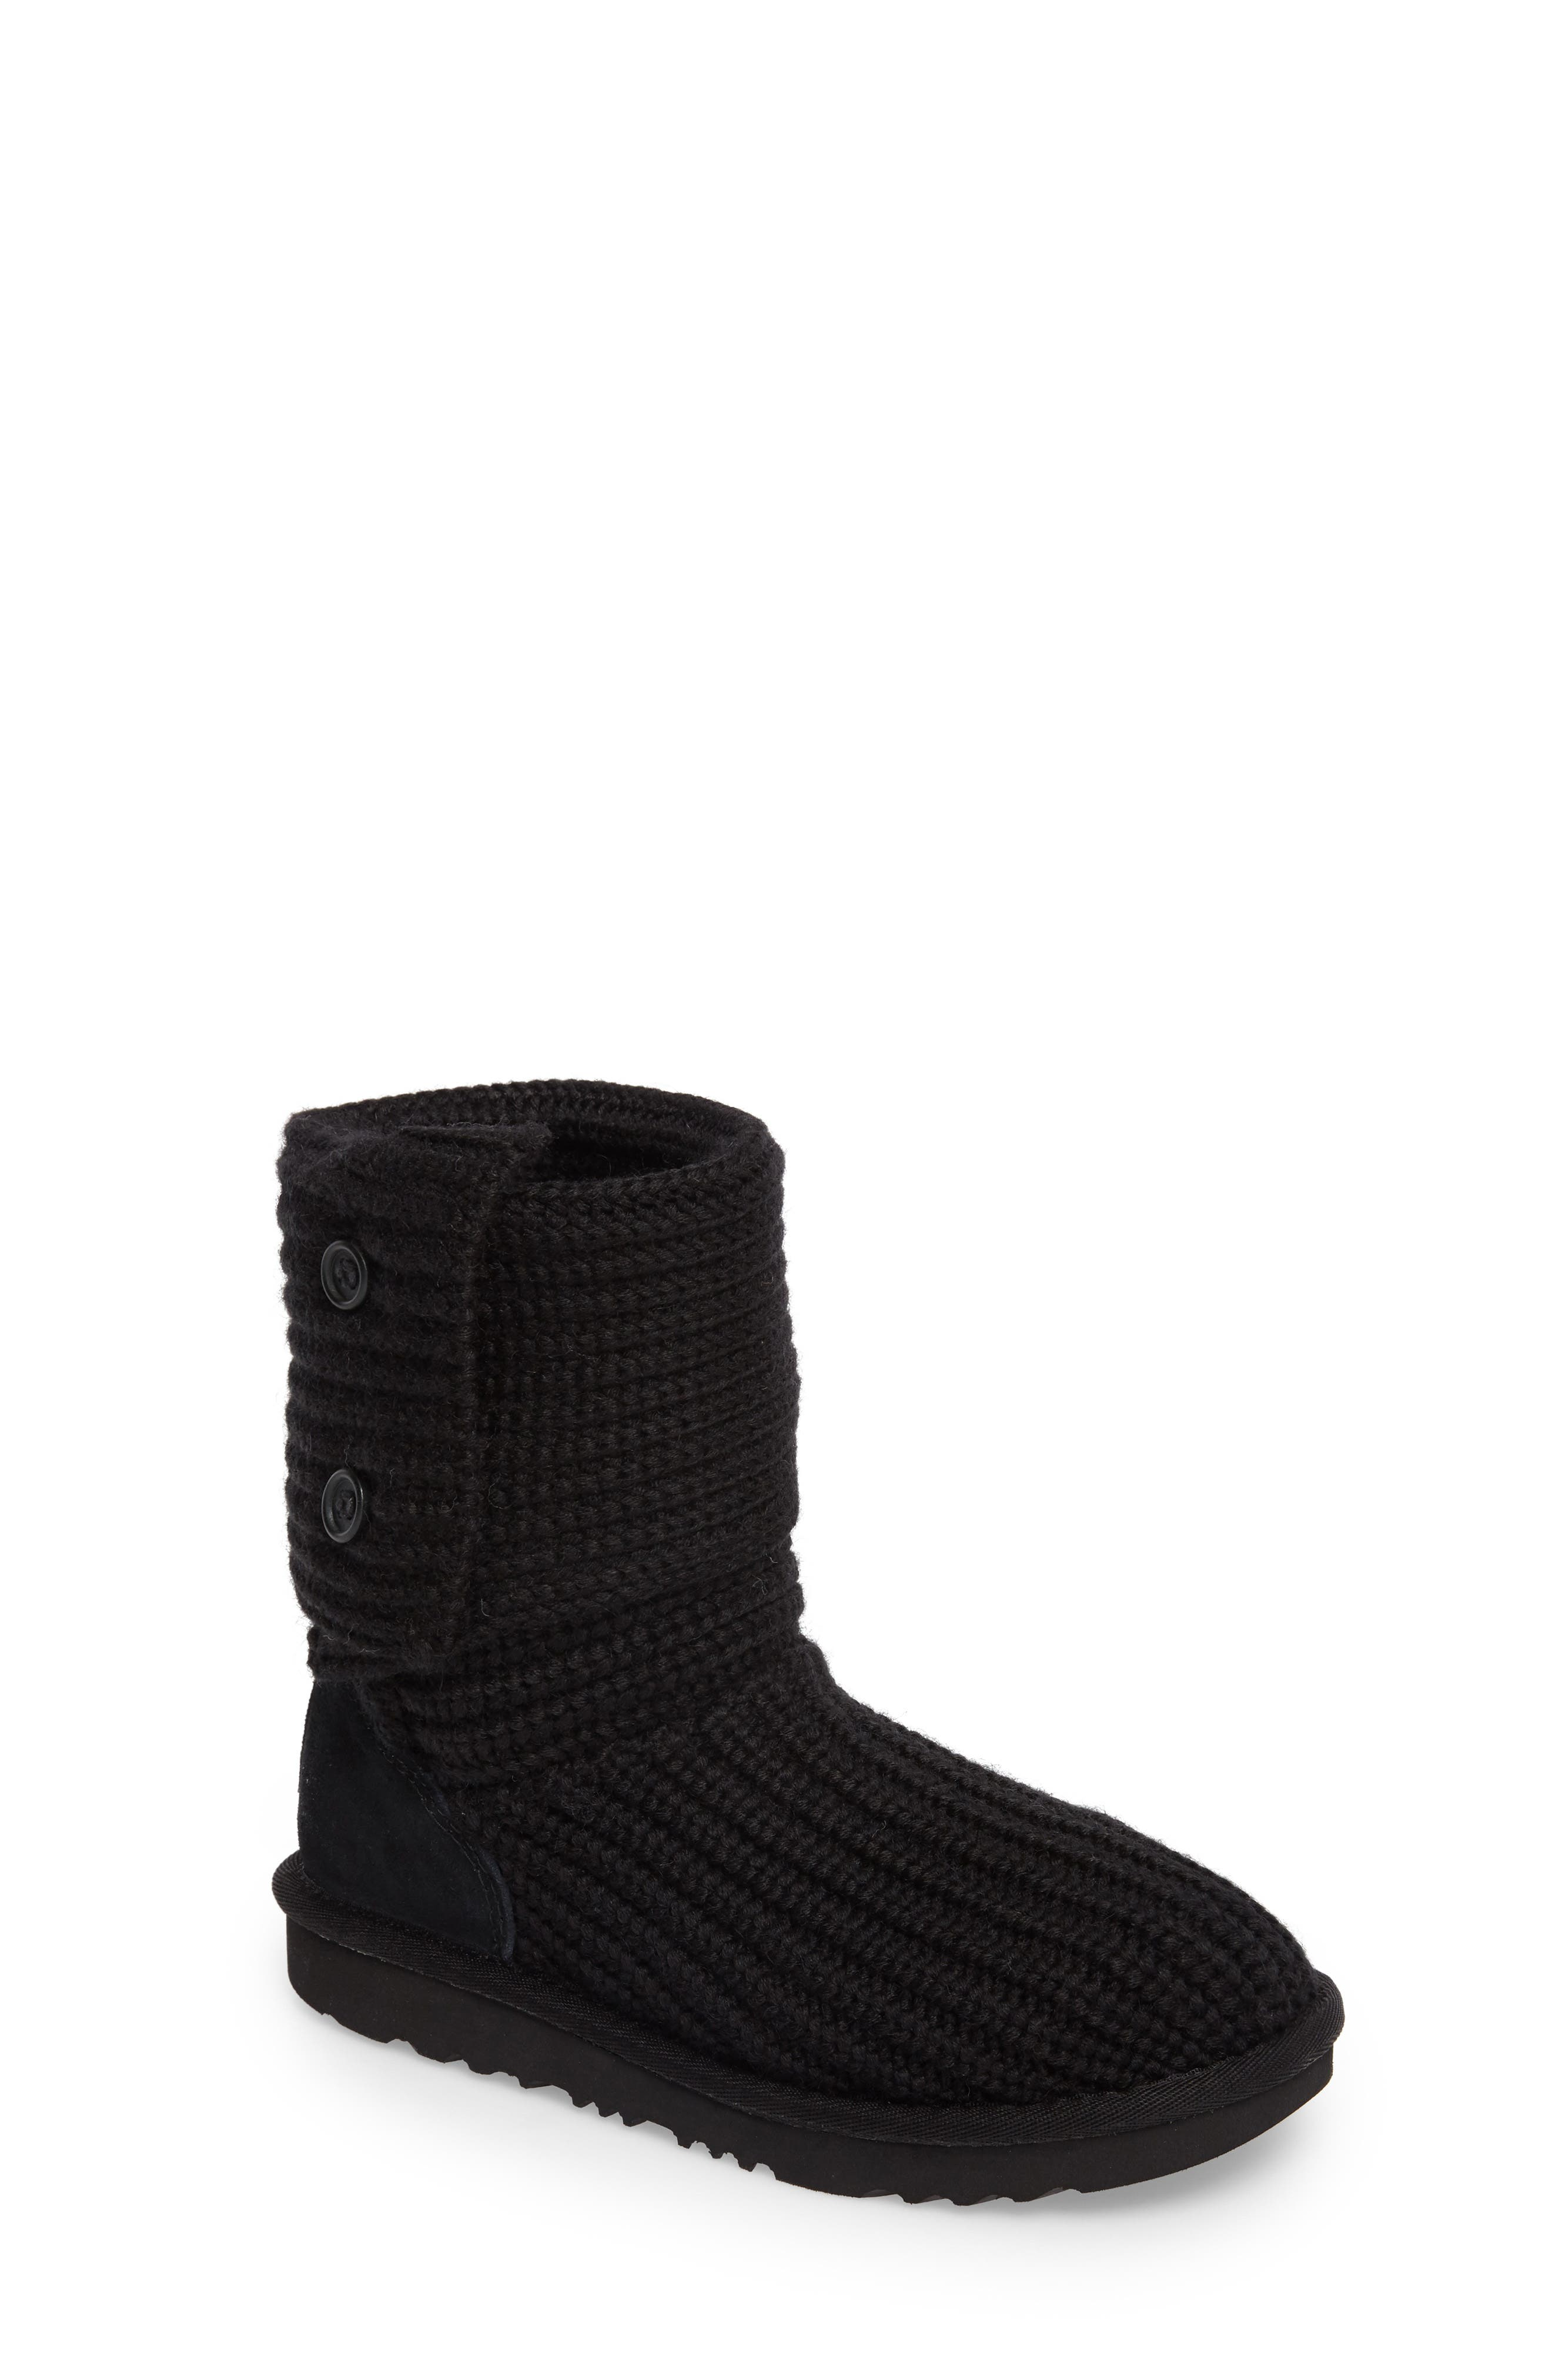 Cardy II Cableknit Boot,                             Main thumbnail 1, color,                             BLACK